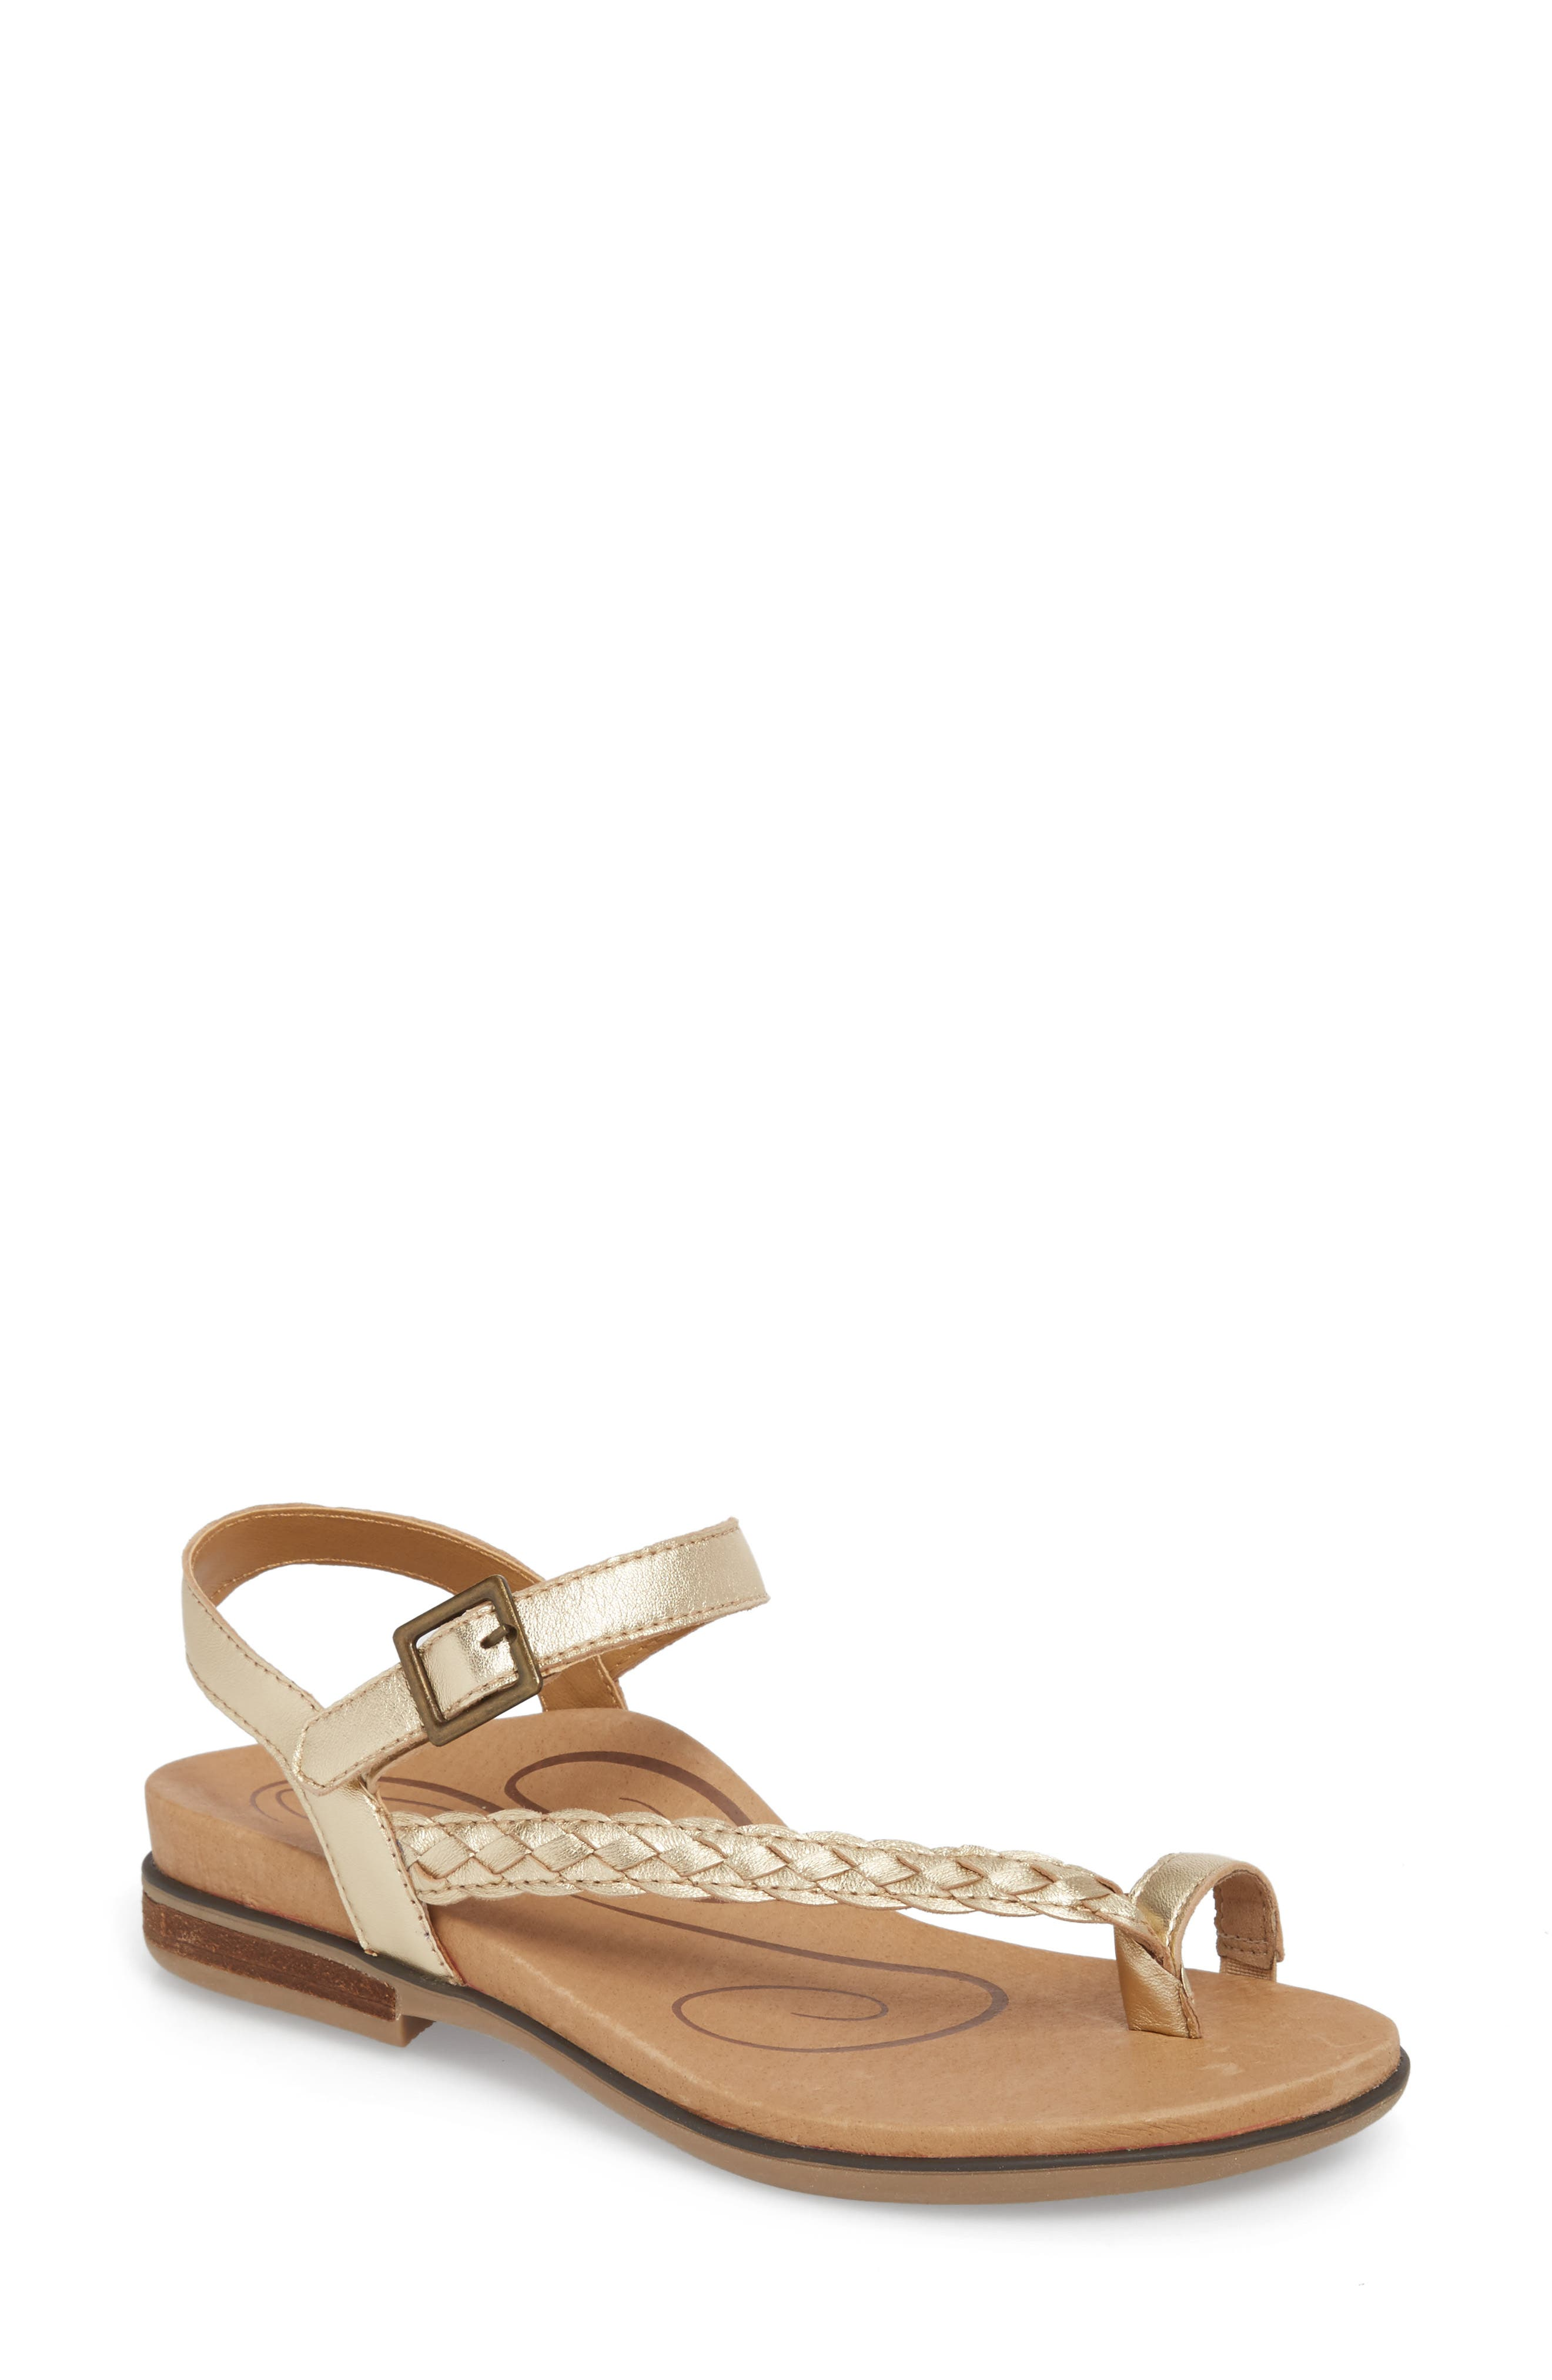 Evie Braided Strap Sandal,                         Main,                         color, Gold Leather